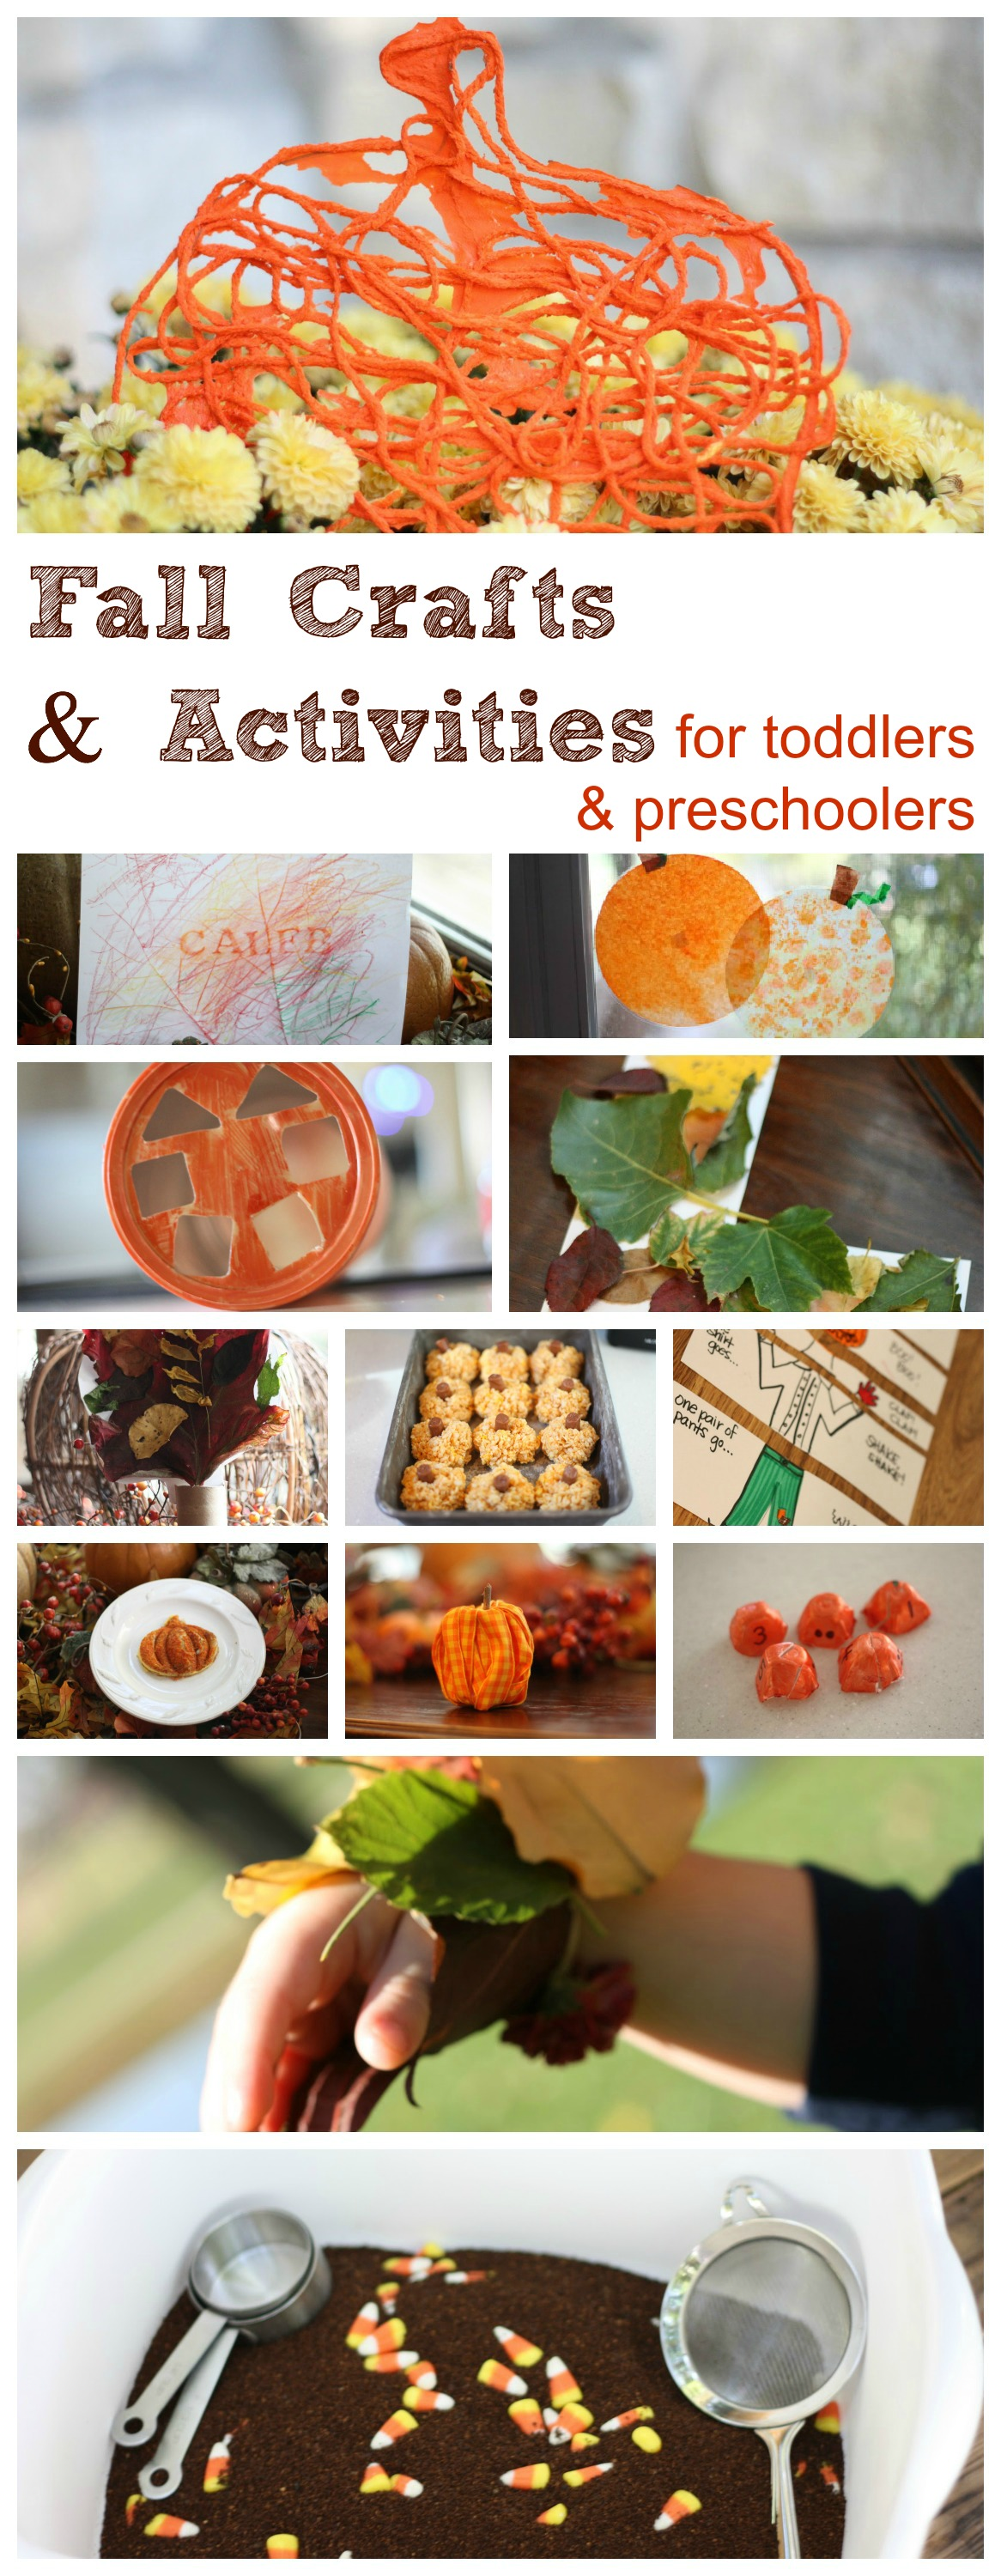 Fall crafts and activities for preschoolers and toddlers for Fall ideas crafts